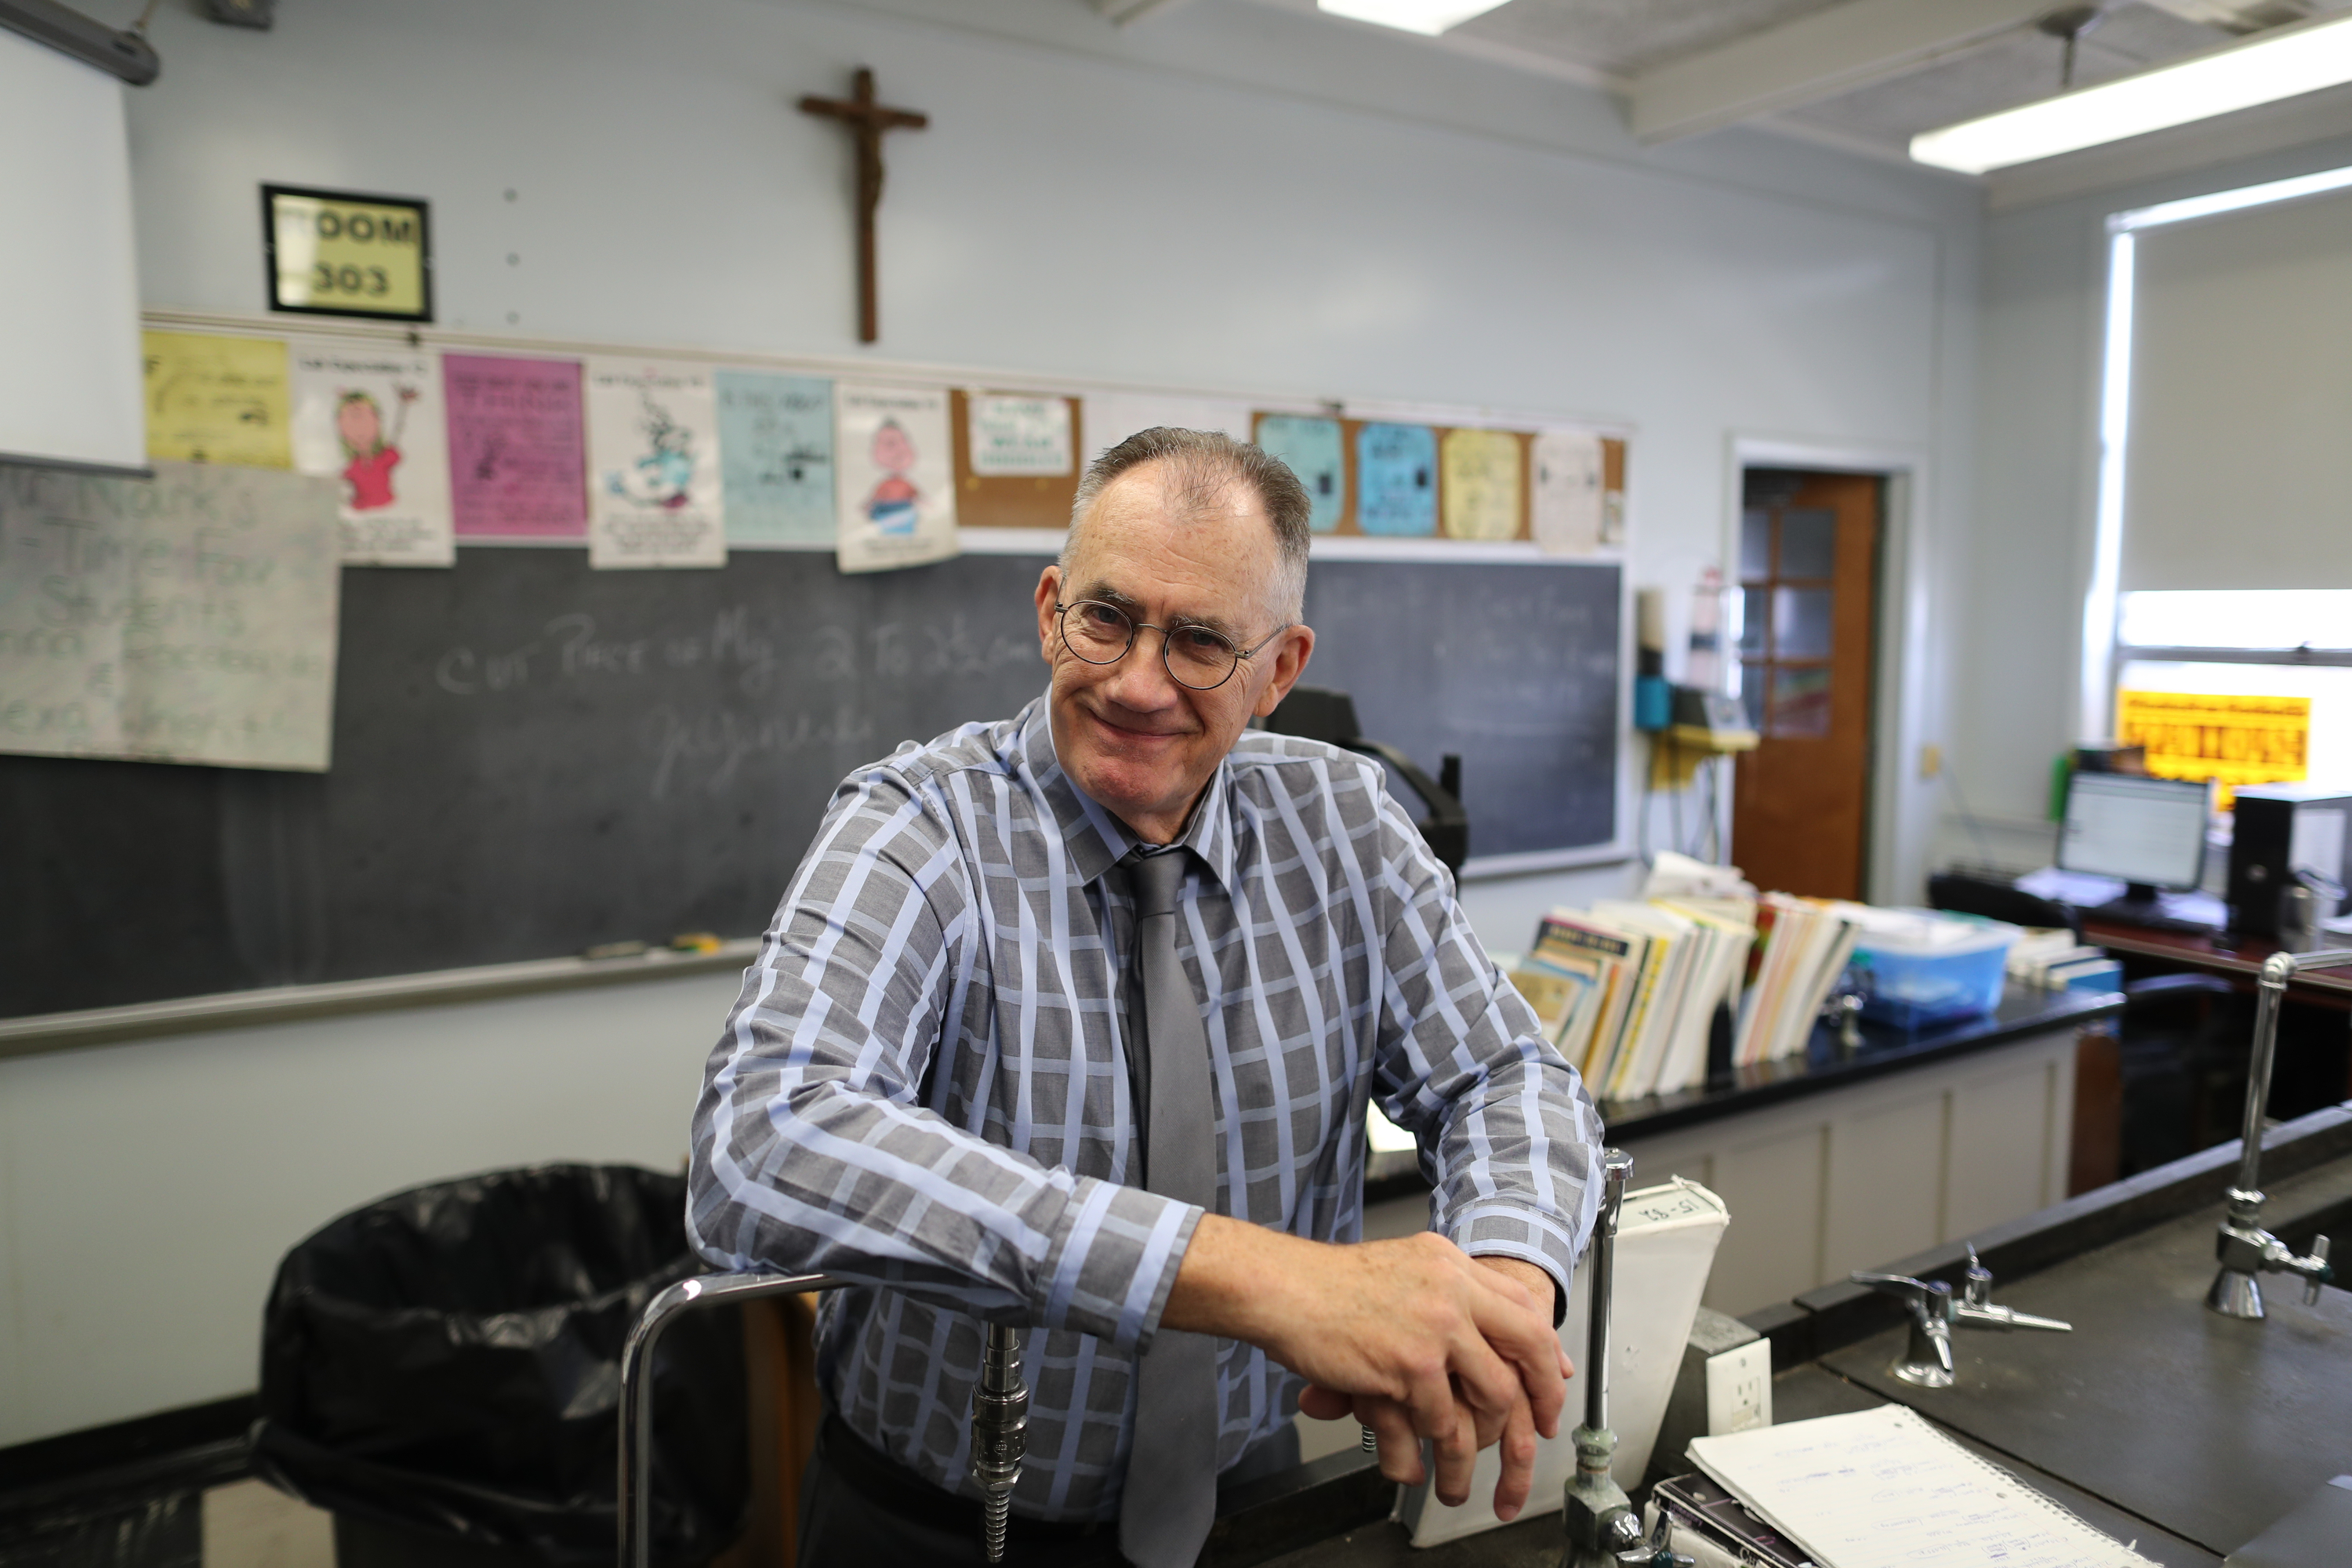 With his sophomore chemistry class, Bob Nark, Jason Nark´s father retires from his alma mater, Gloucester Catholic, after 48 years as a chemistry teacher, Friday June 8, 2018. DAVID SWANSON / Staff Photographer